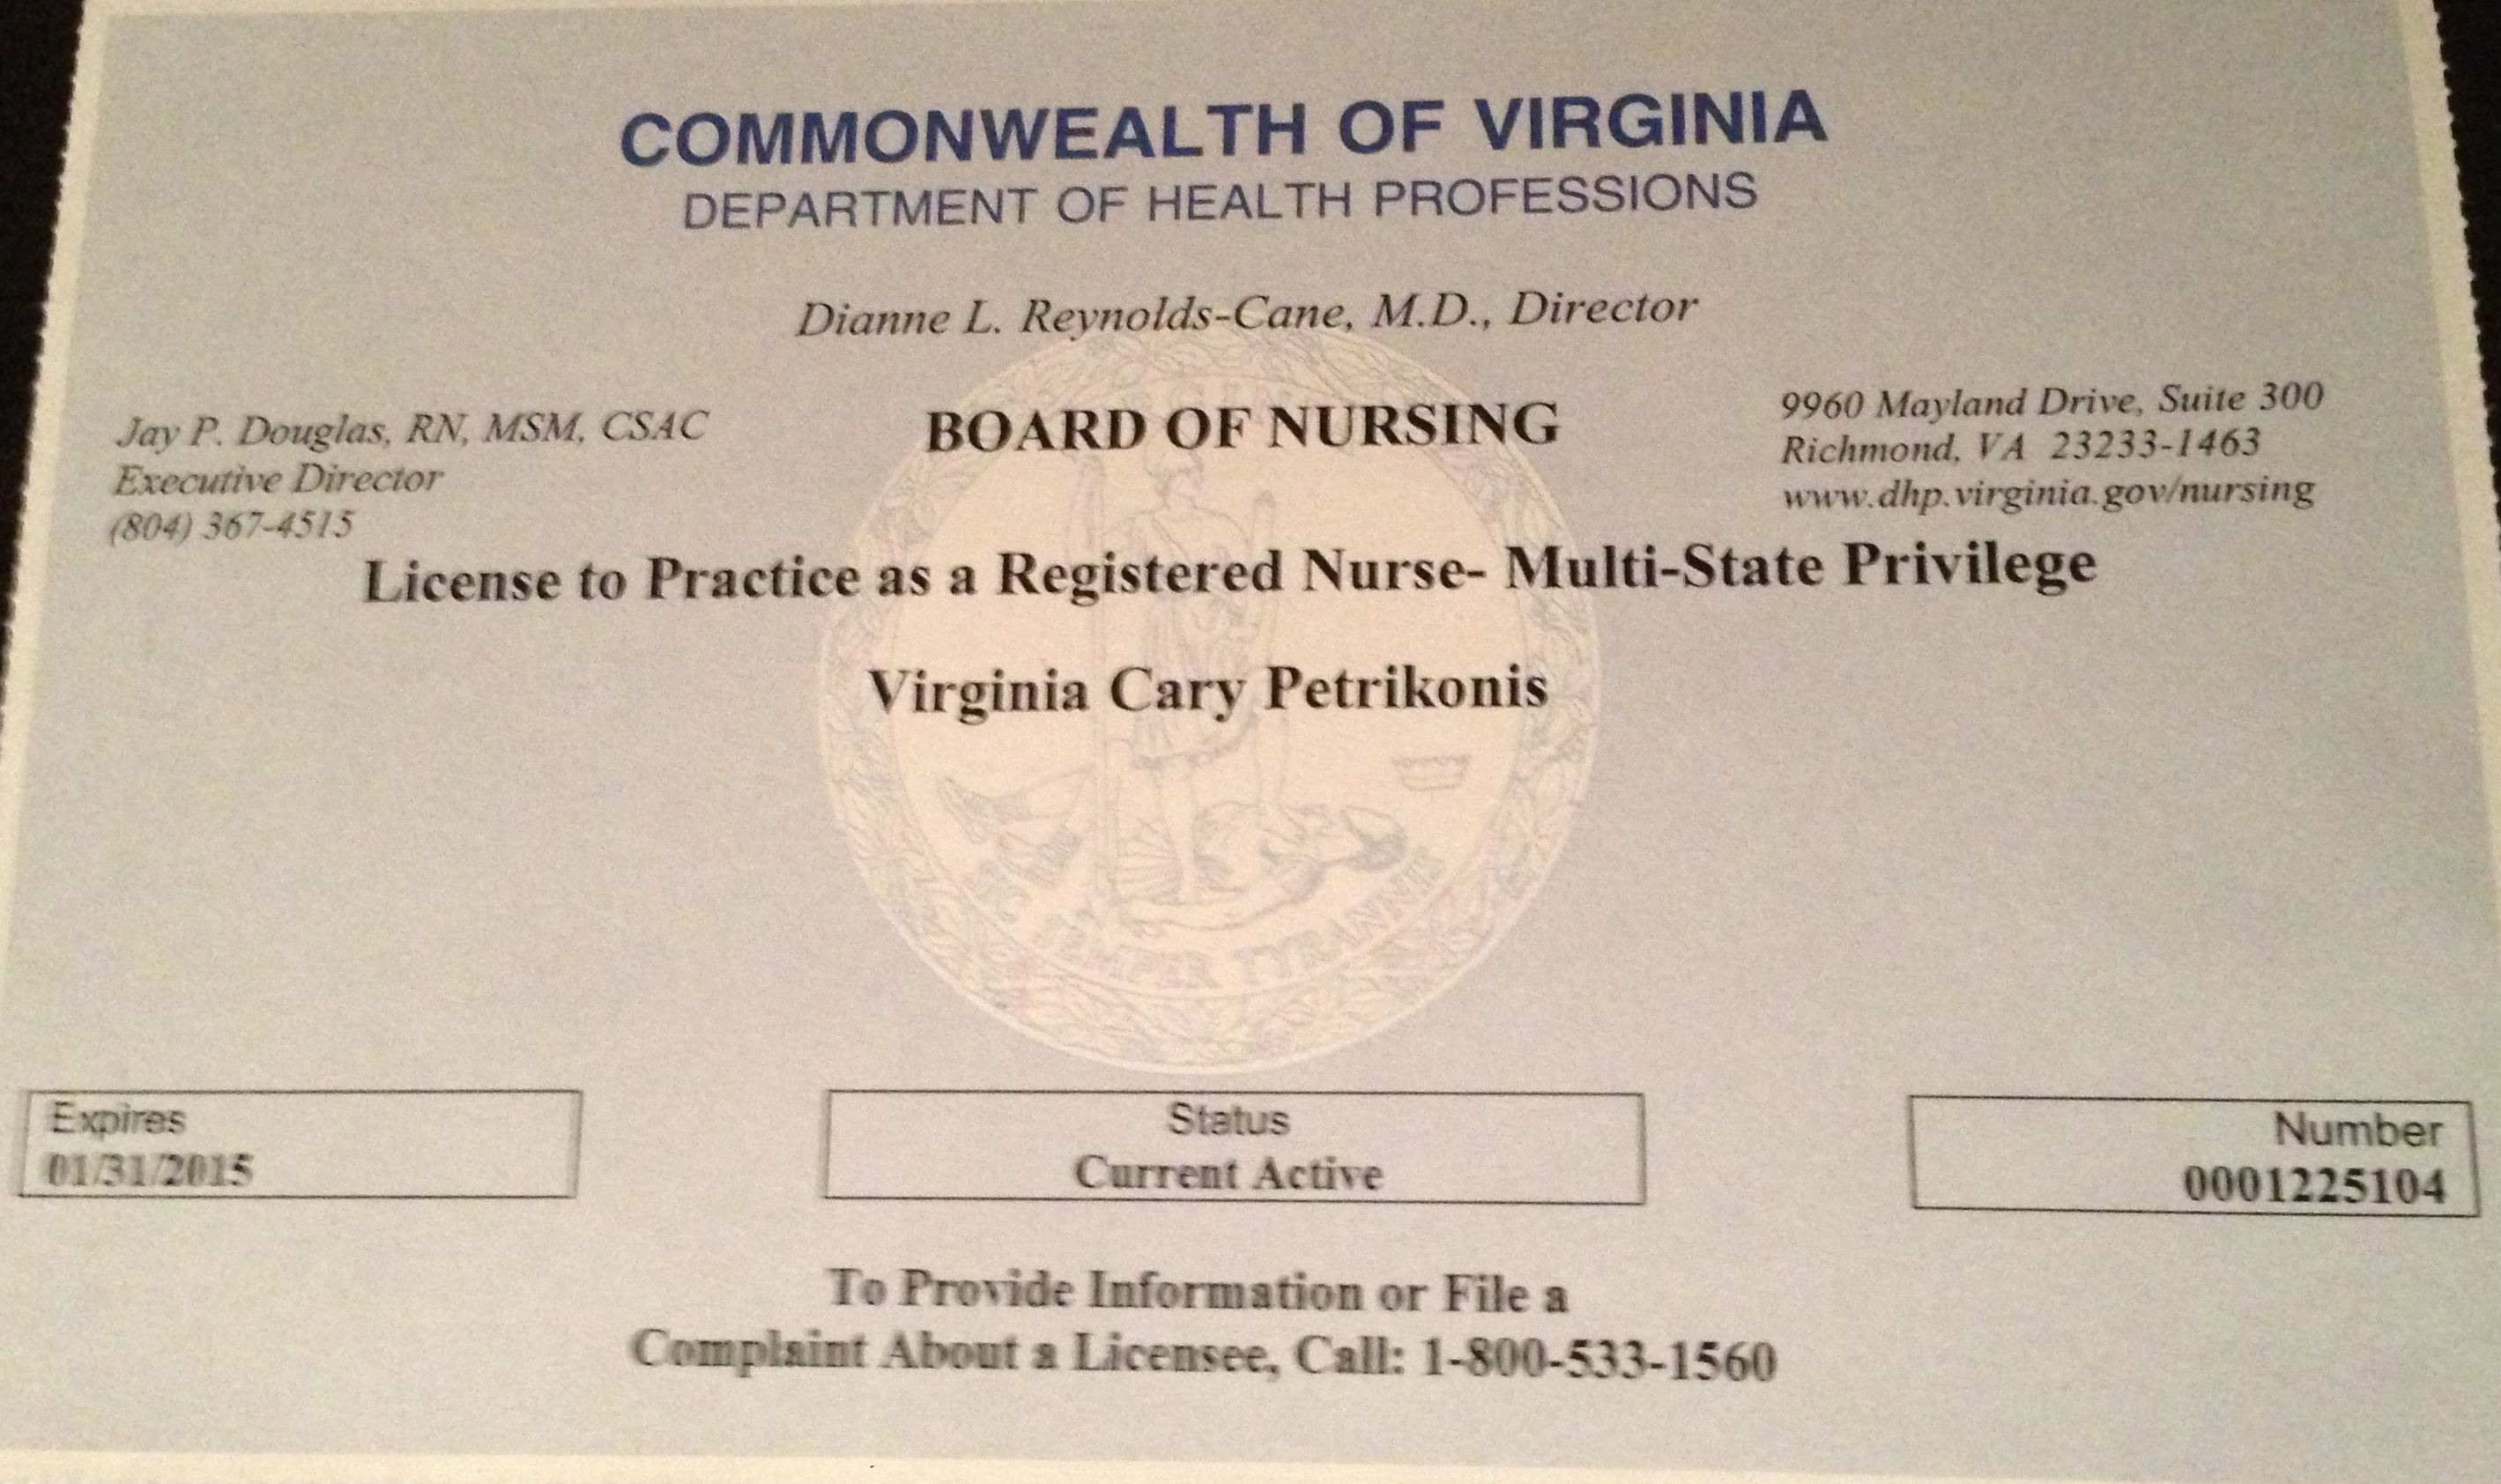 Licensure certifications virginia petrikonis med ba bsn rn american heart association basic life support for healthcare provider 808 614 plan to obtain certified pediatric nurse certification in may 2013 xflitez Gallery